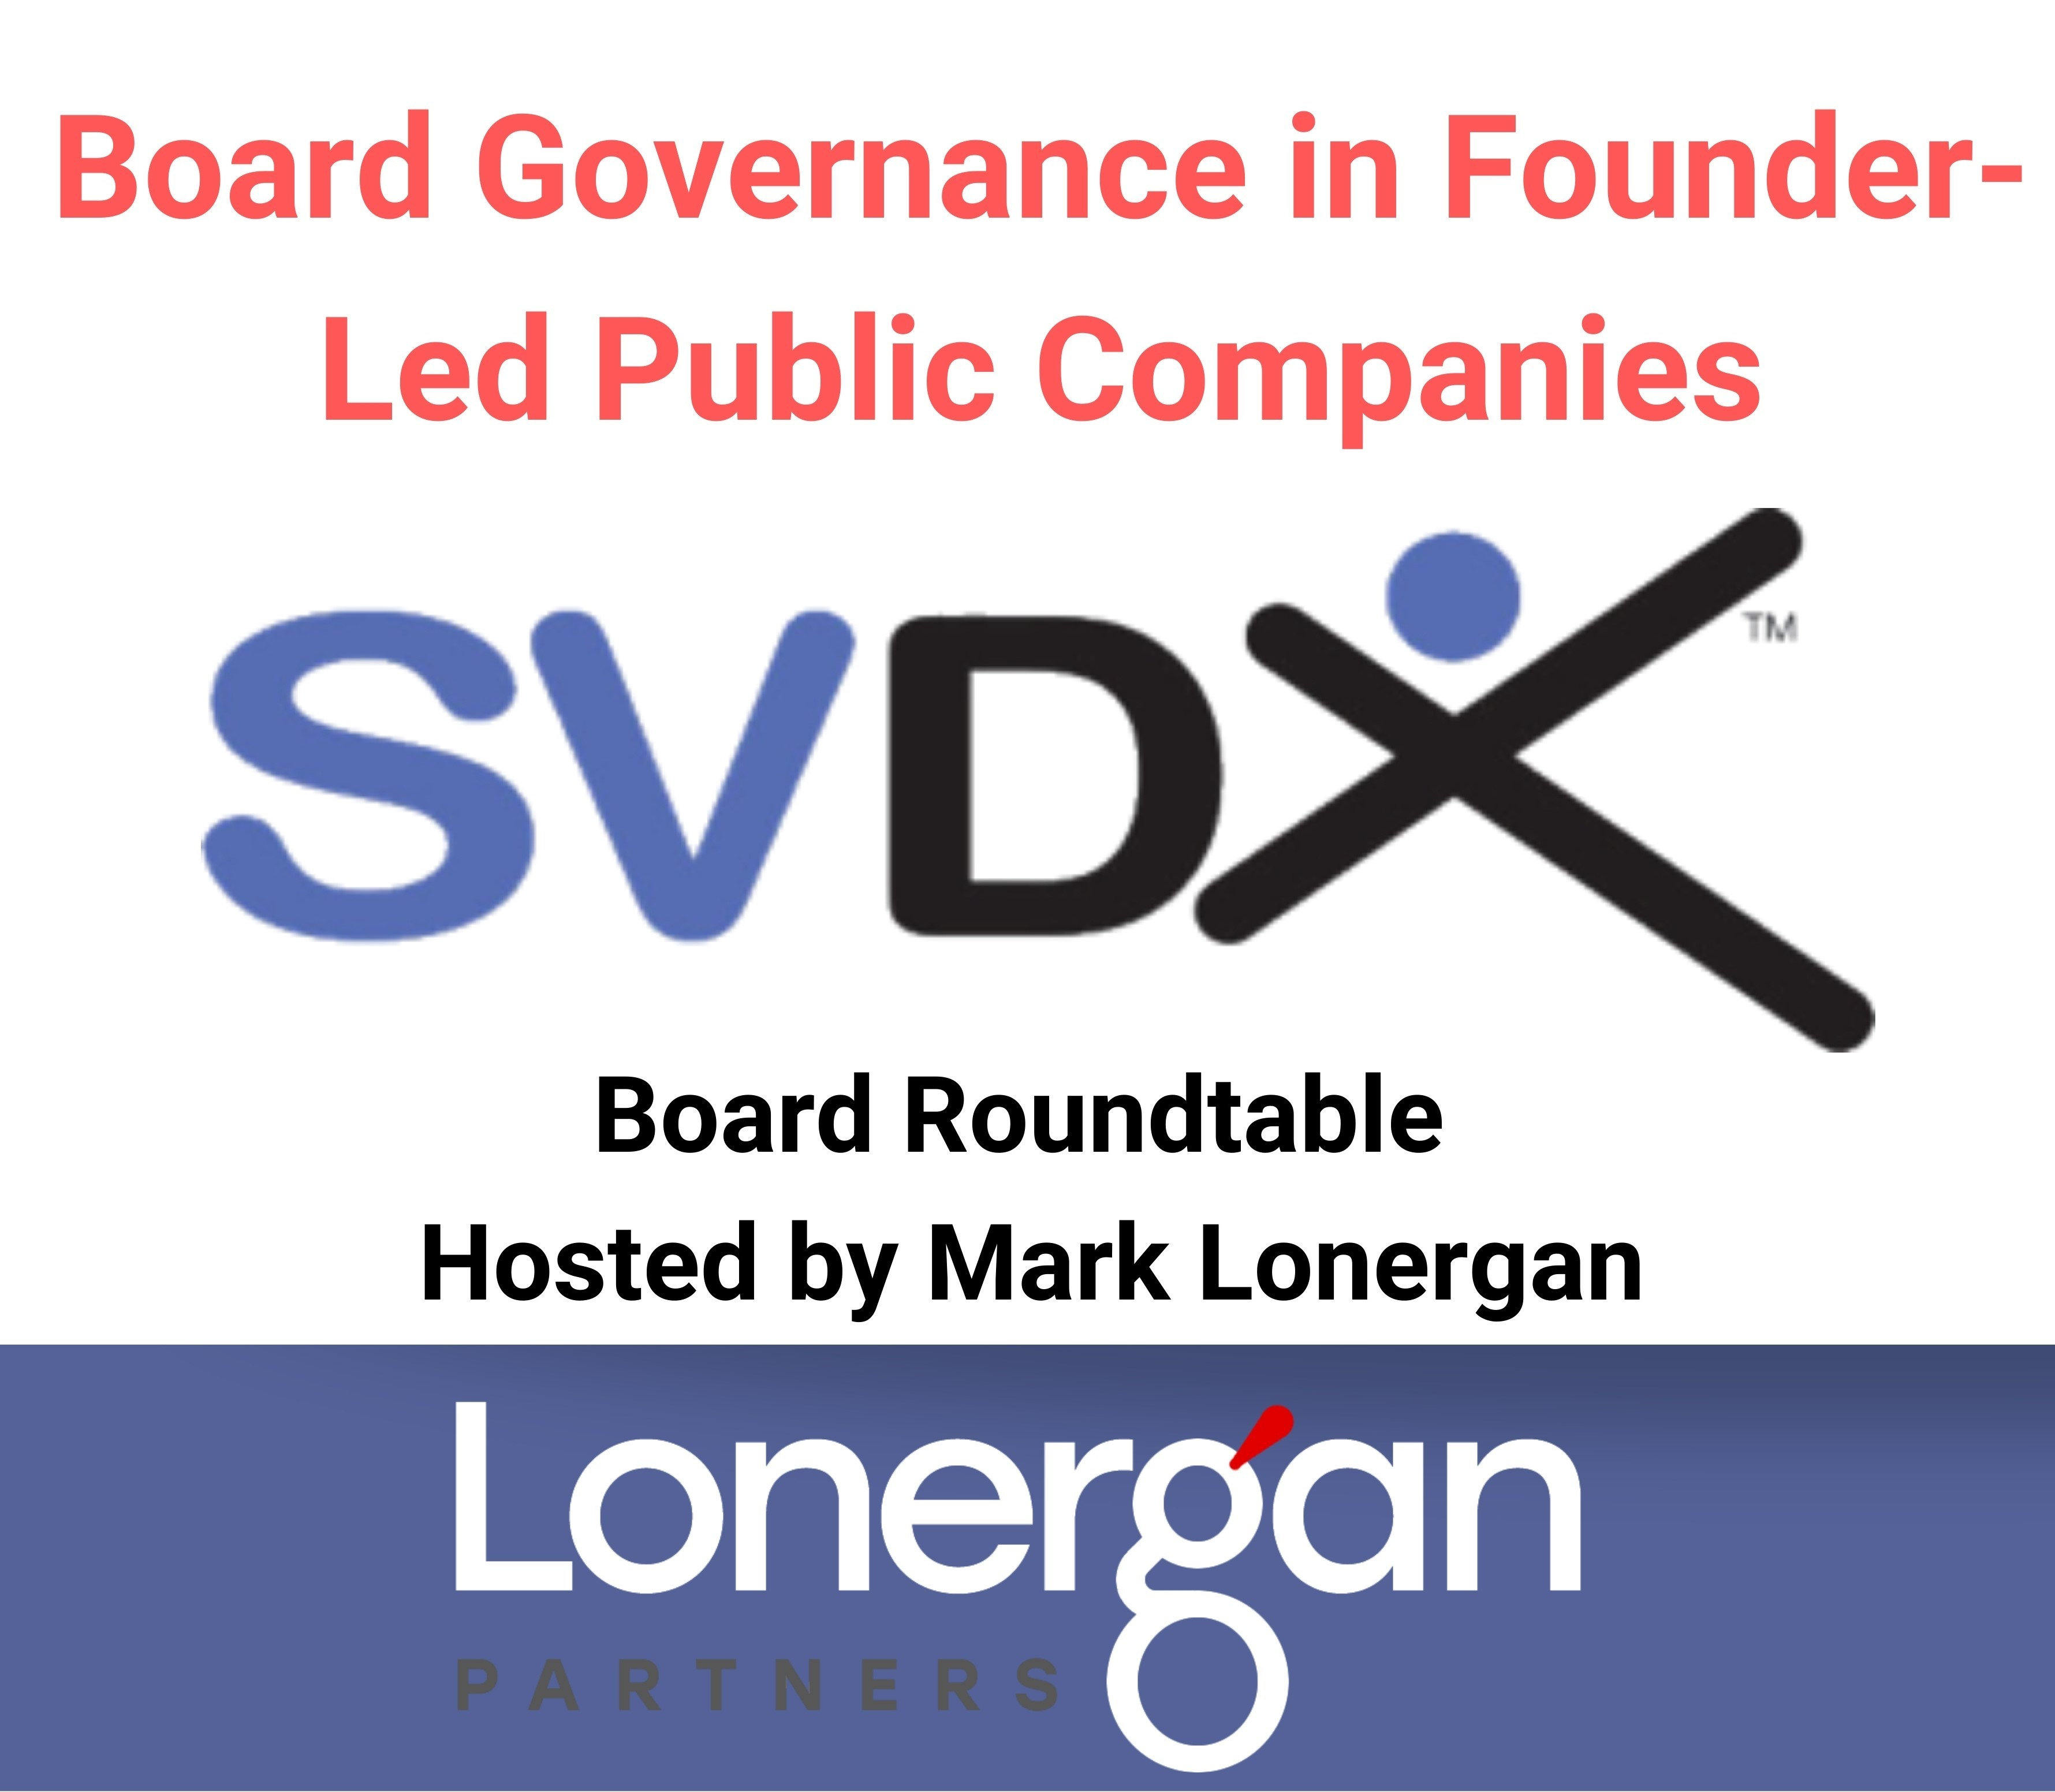 Board Directors Find Founder-CEOs a Challenge Thumbnail Image